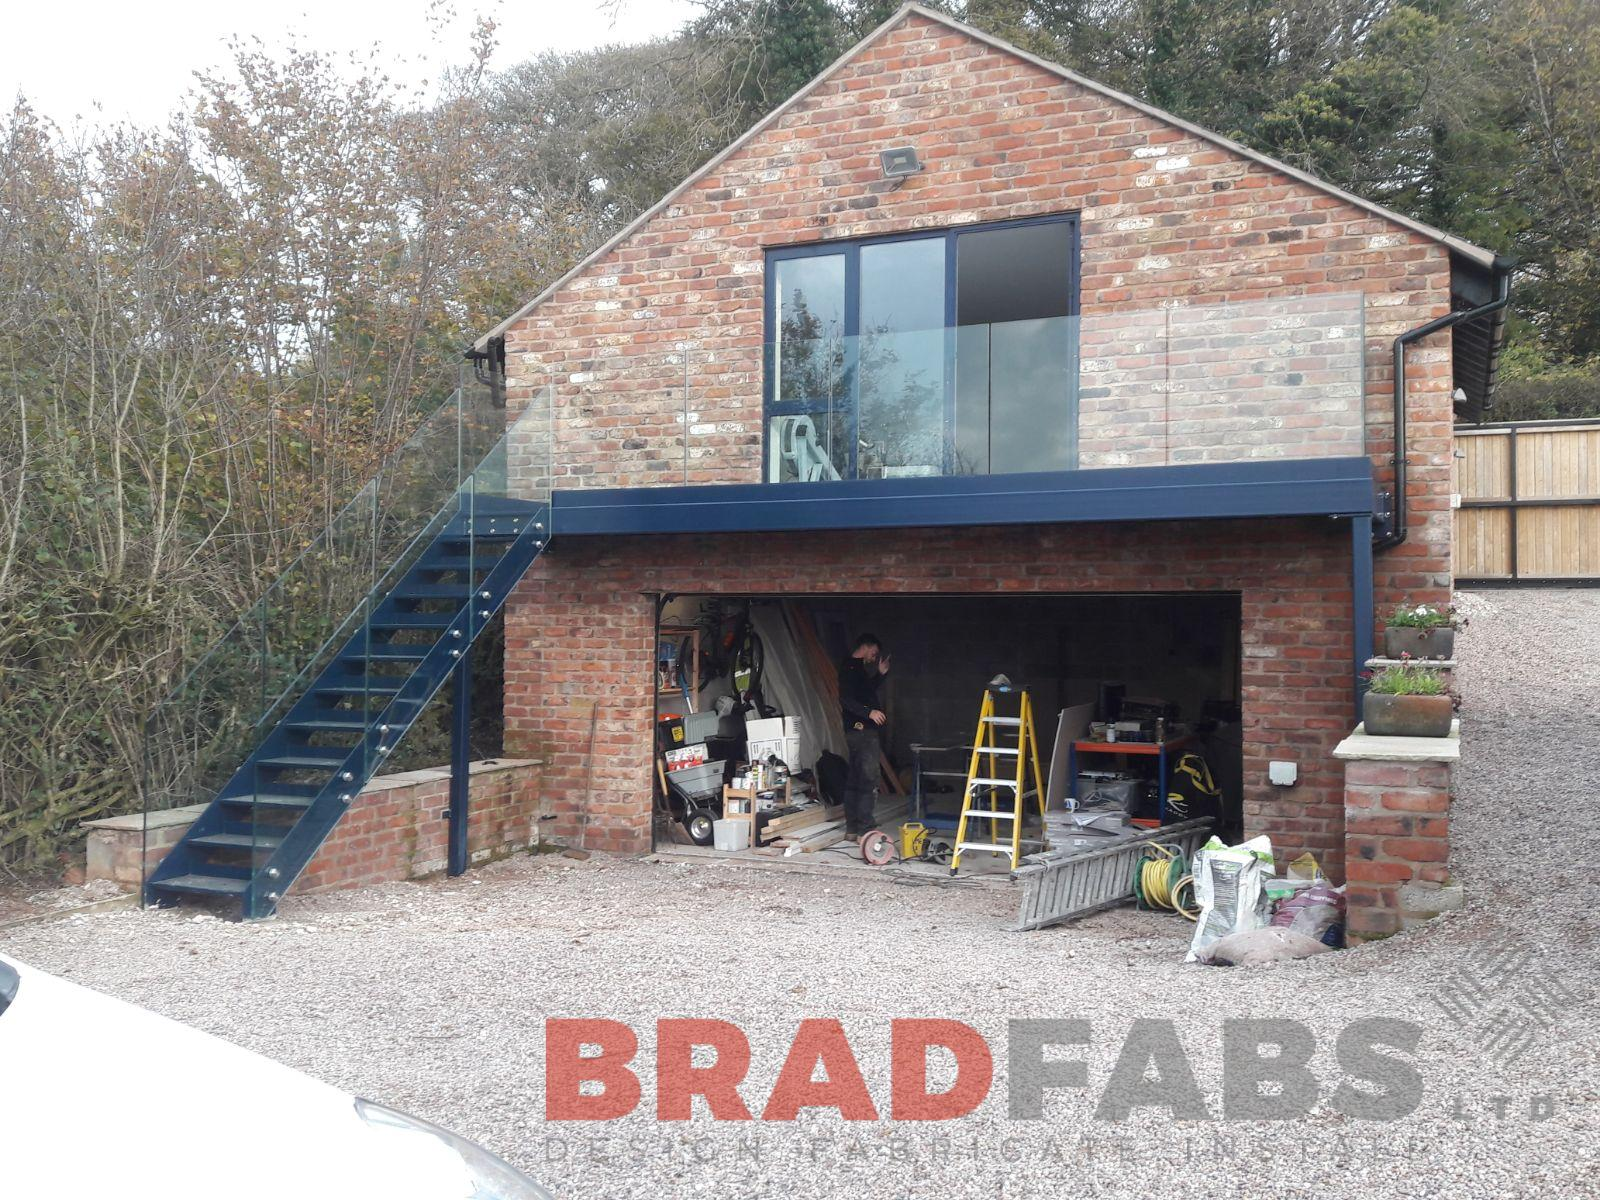 Powder coated, mild steel balcony and staircase with infinity glass